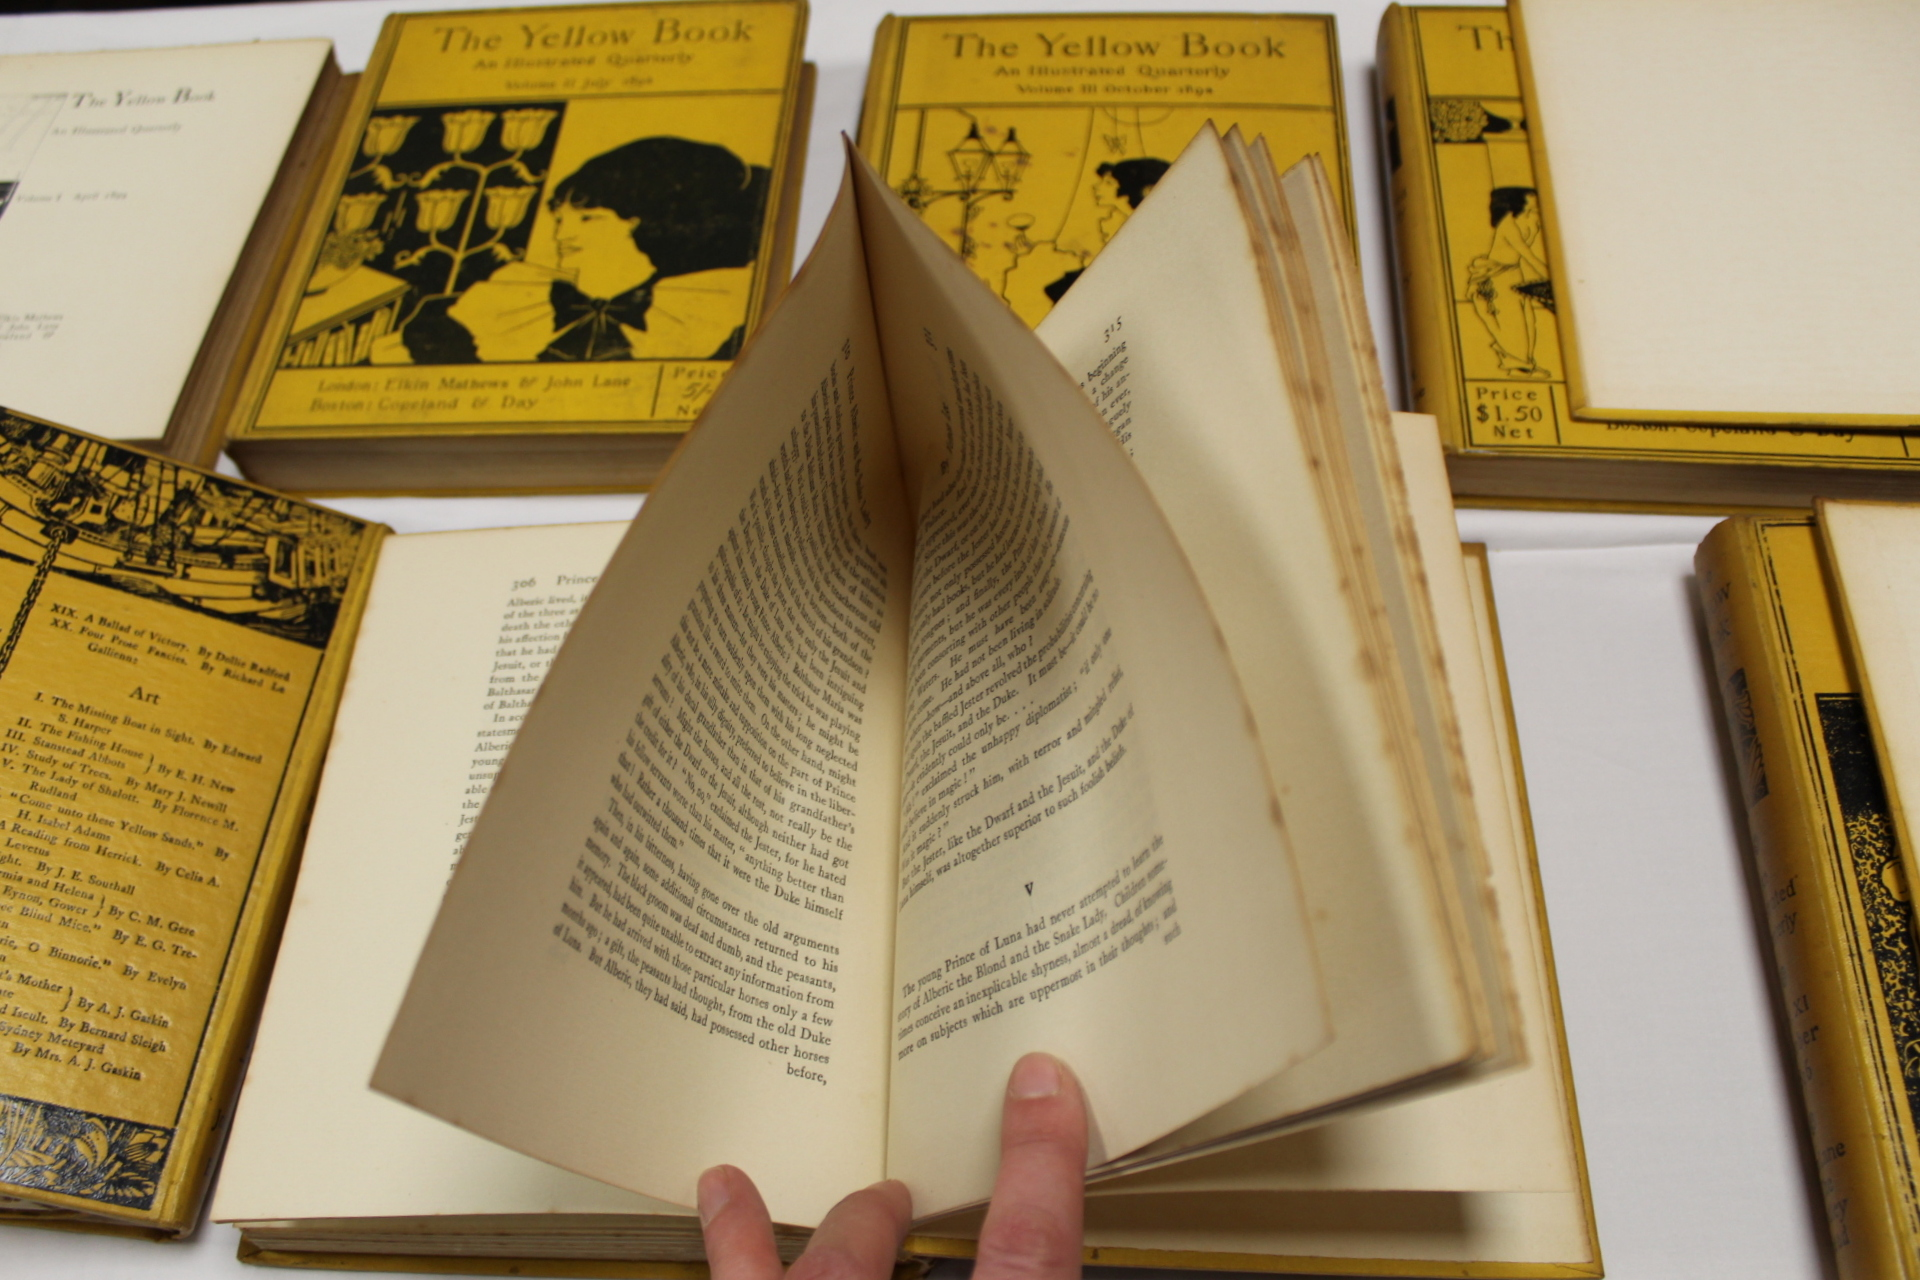 THE YELLOW BOOK.An Illustrated Quarterly. A set of 13 vols., many fine illus. Small quarto. - Image 16 of 45